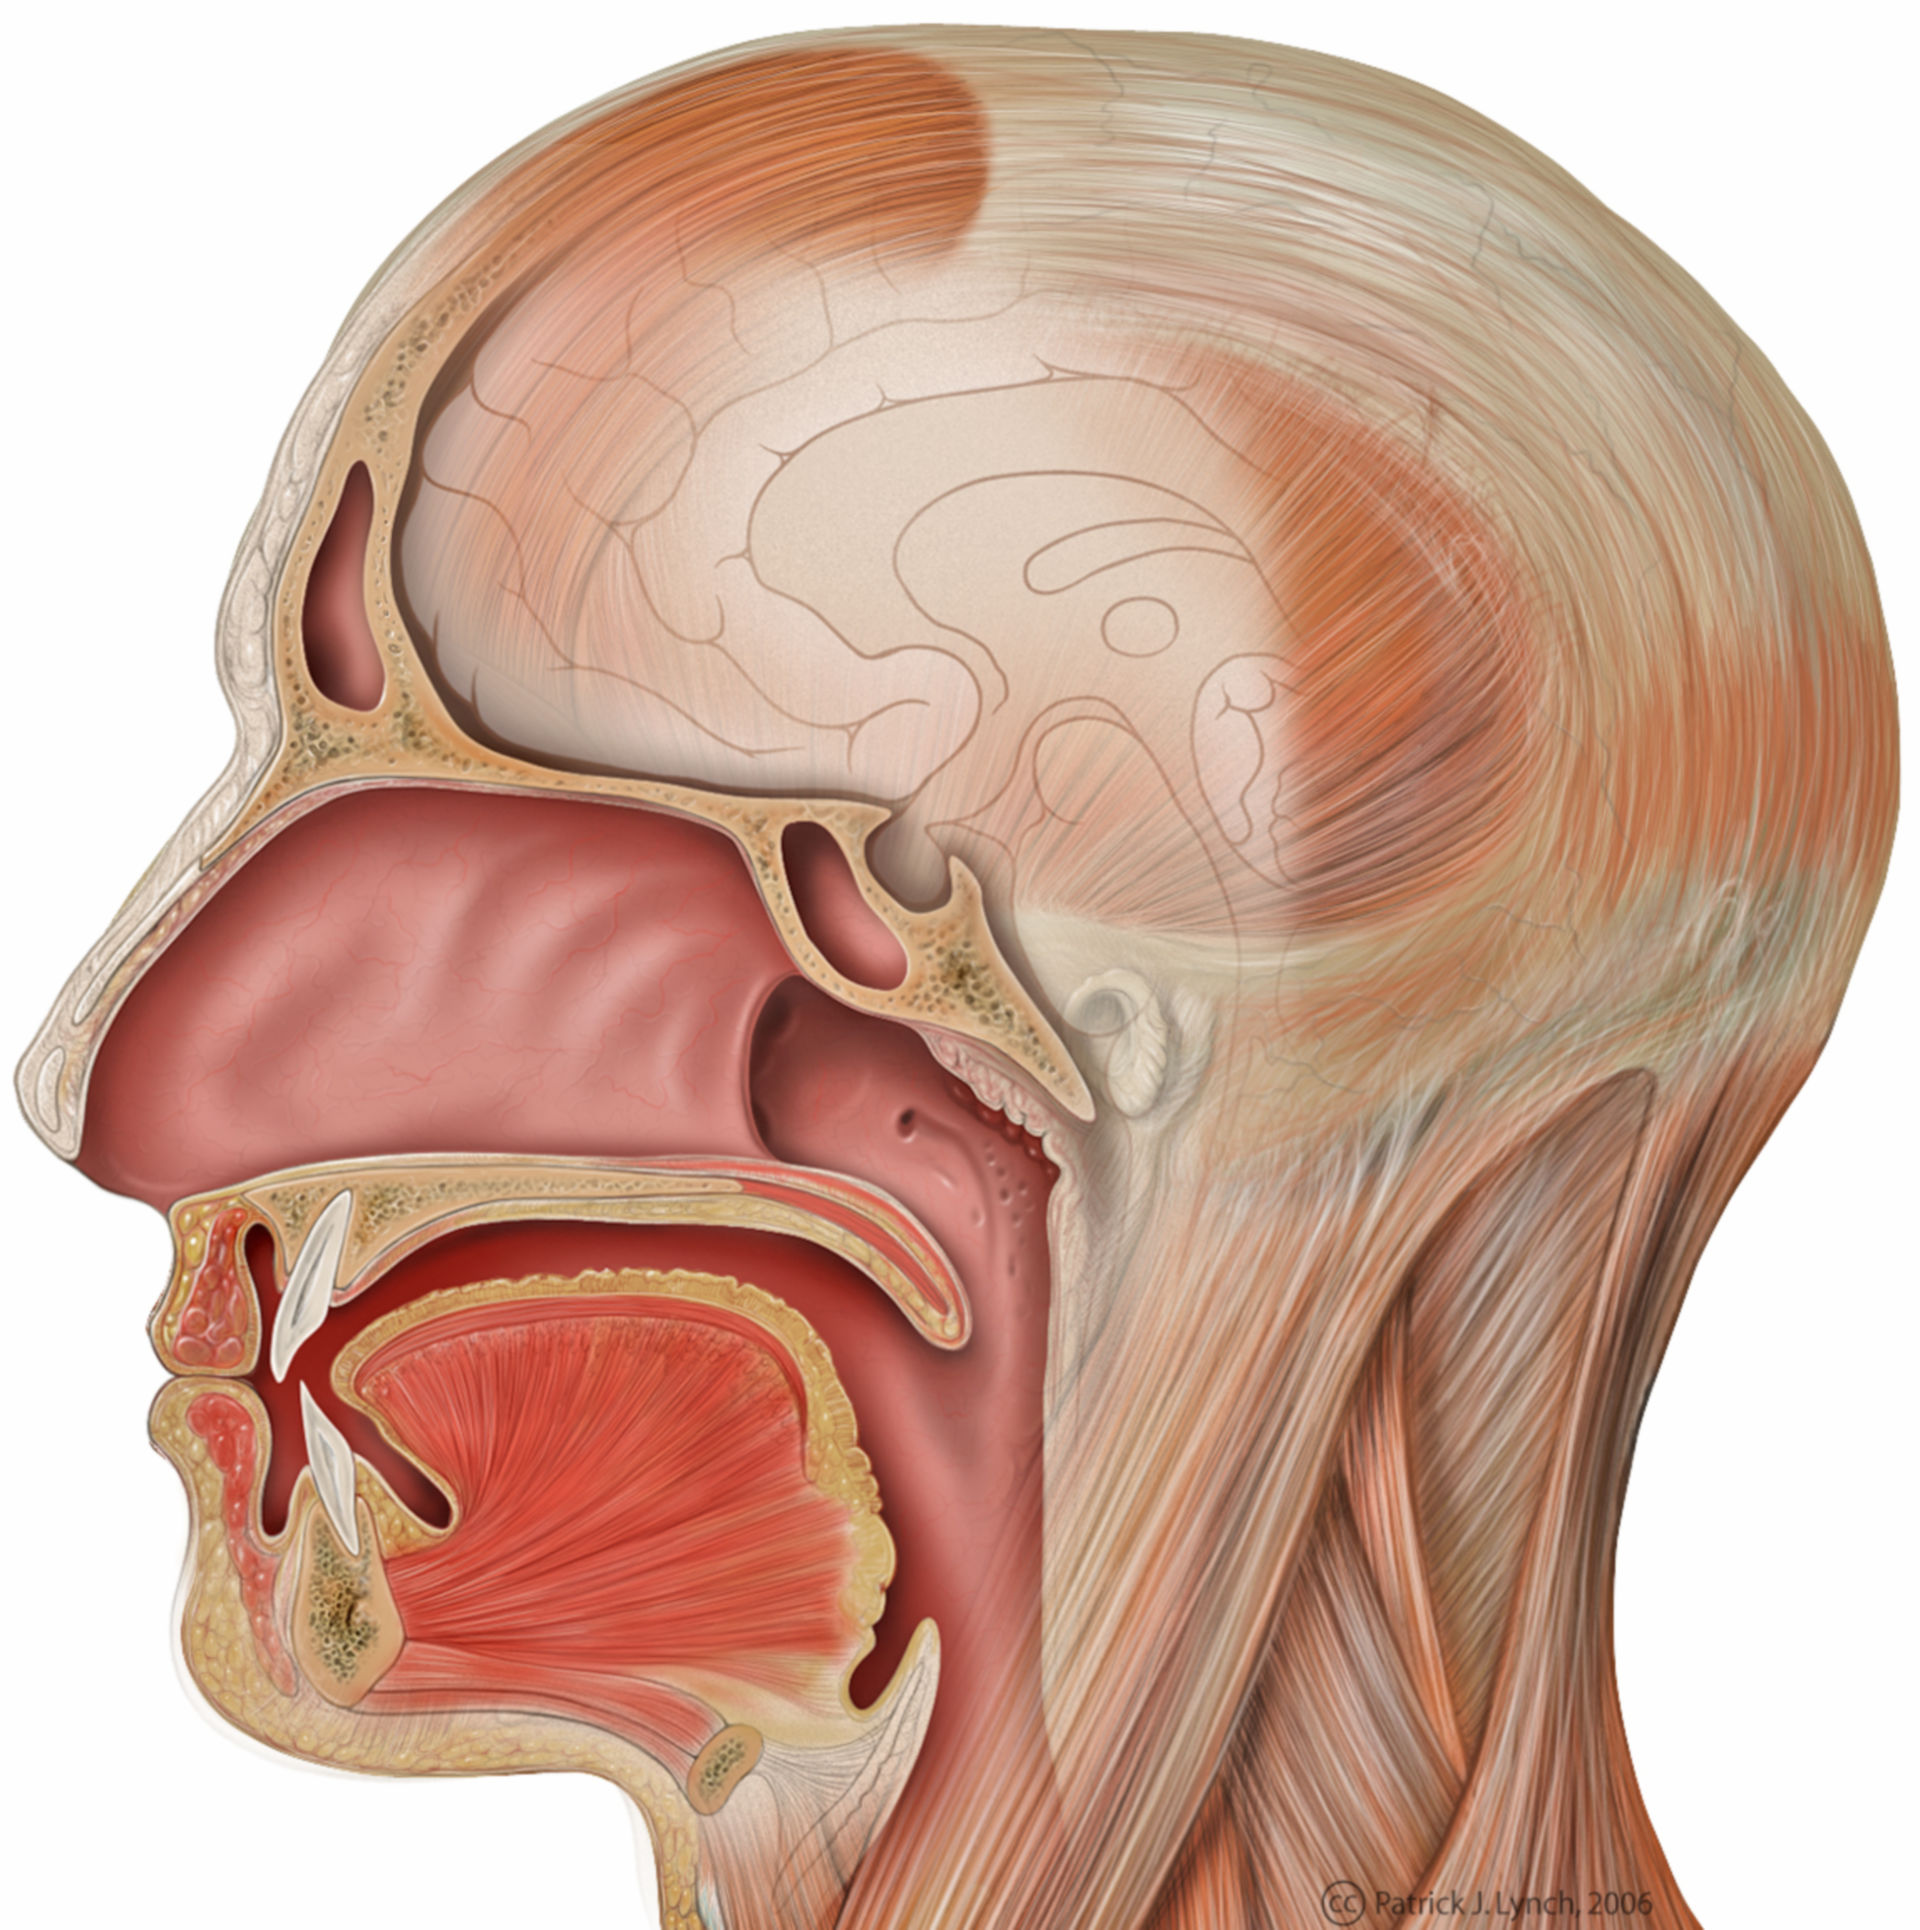 Head lateral view with sagittal mouth anatomy